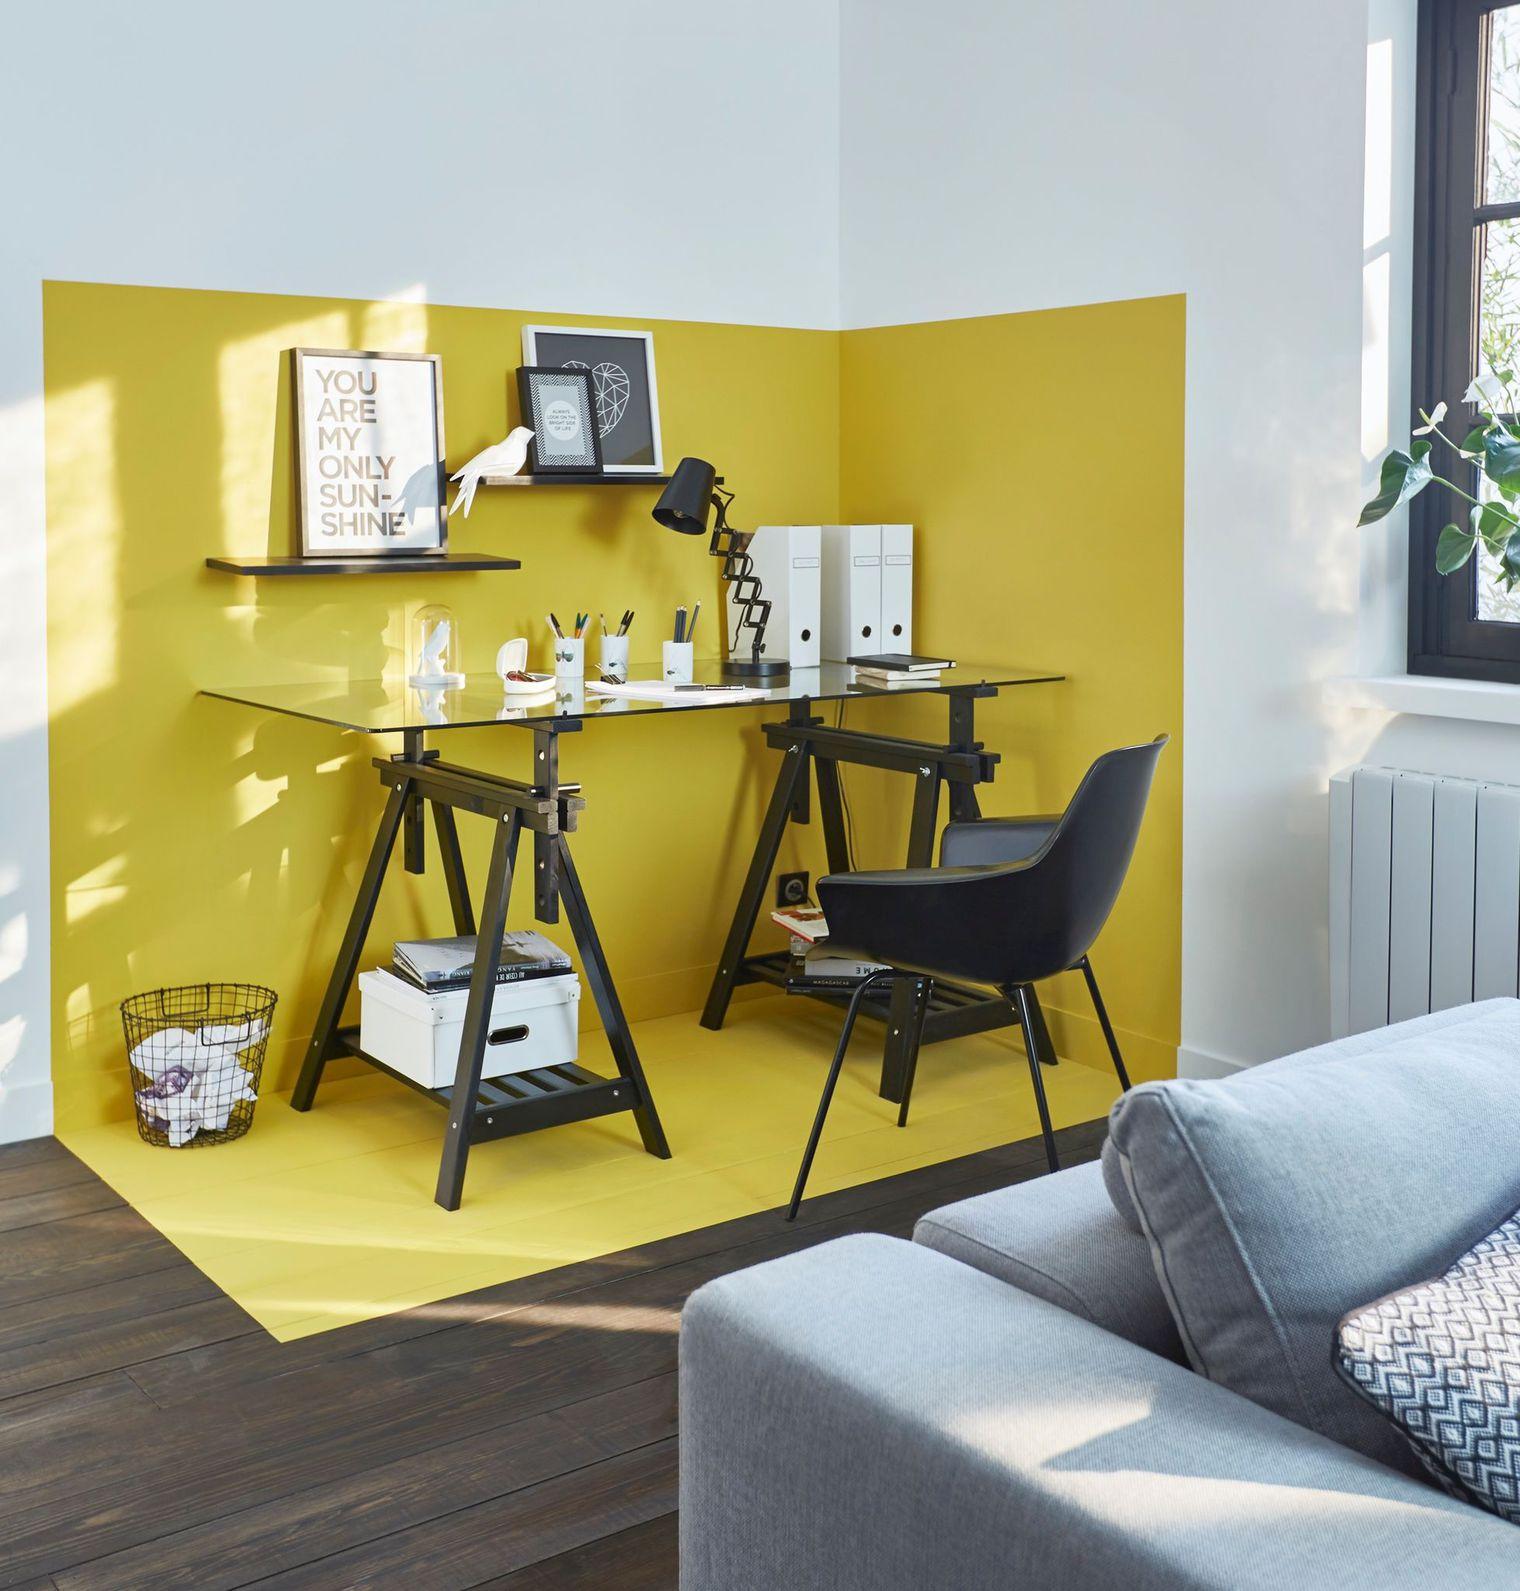 styling_hygge_interior_paint_yellow_workspace